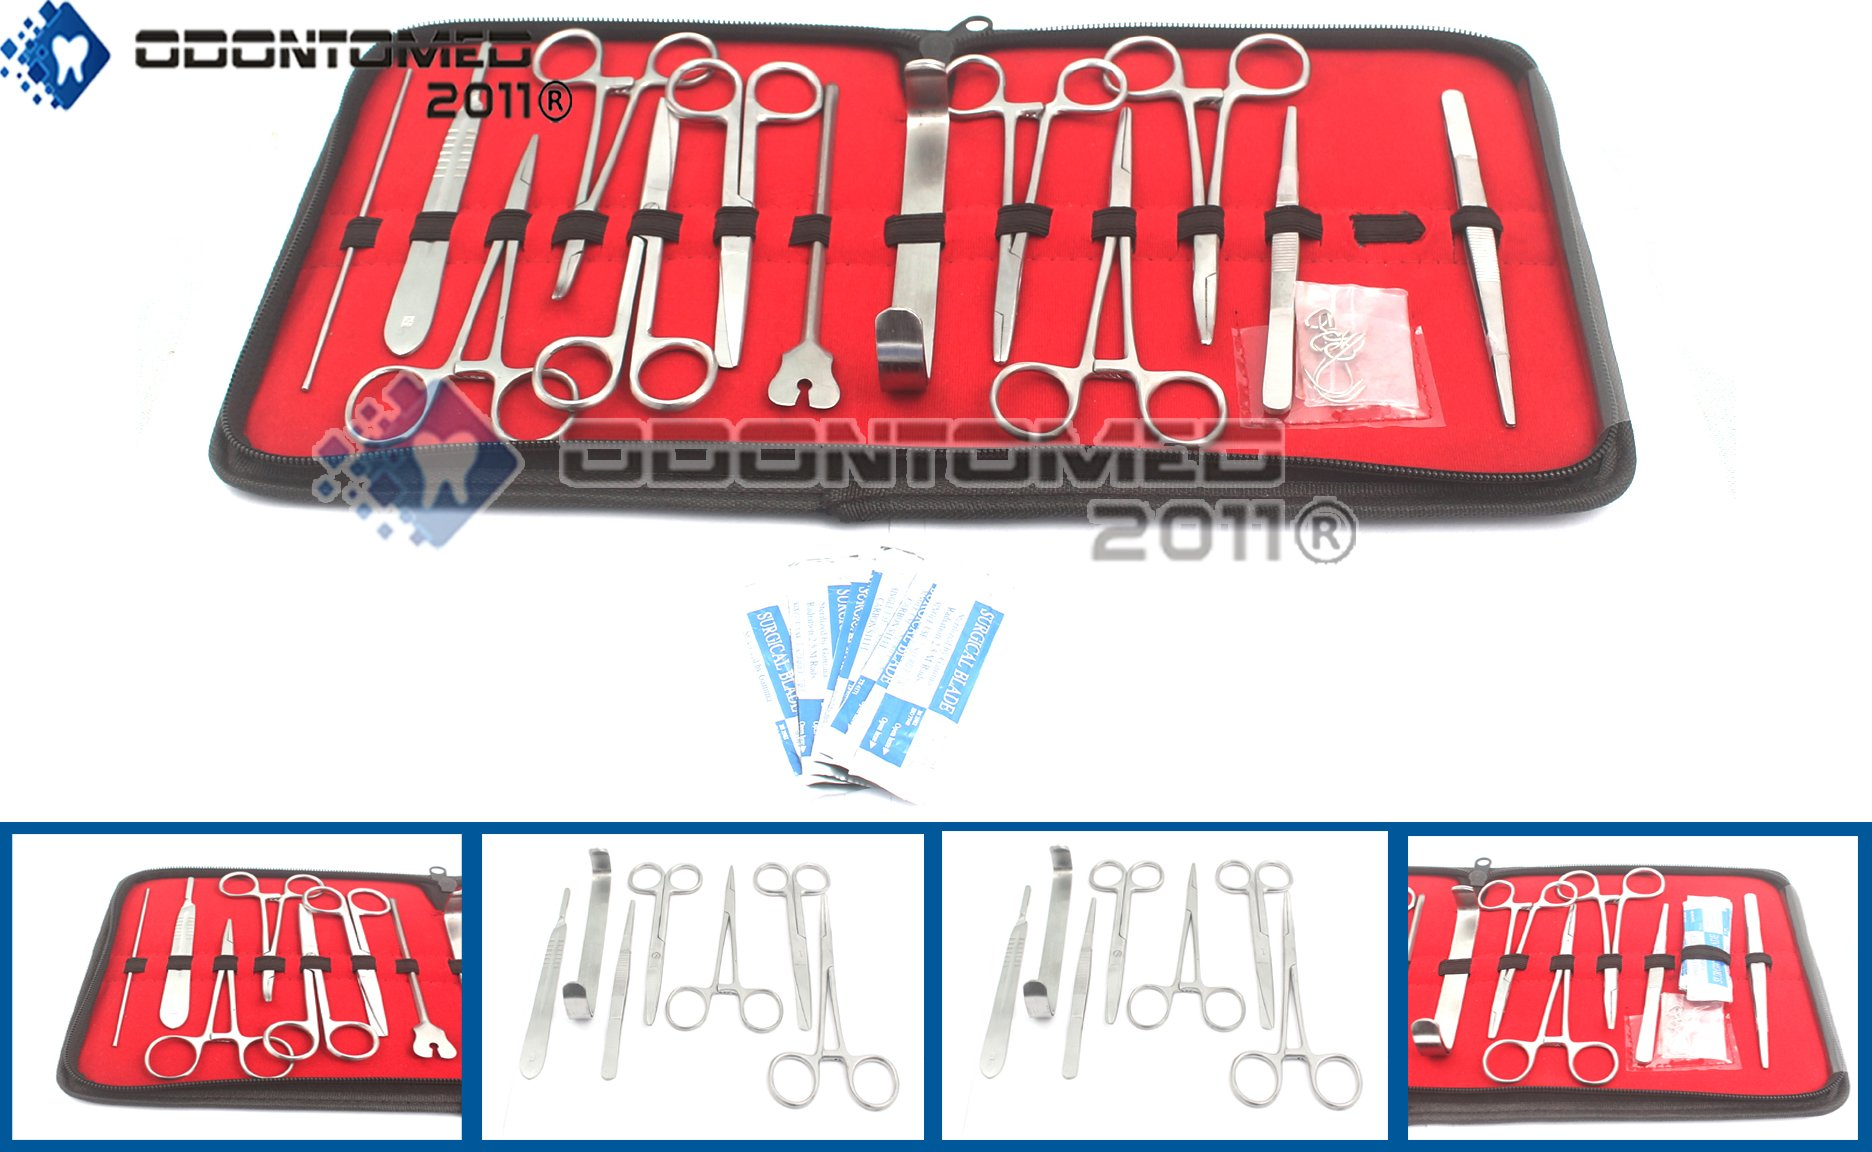 OdontoMed2011 20 PCS ADVANCED BIOLOGY LAB ANATOMY STUDENT DISSECTING DISSECTION KIT SET WITH SCALPEL KNIFE HANDLE BLADES ODM by ODONTOMED